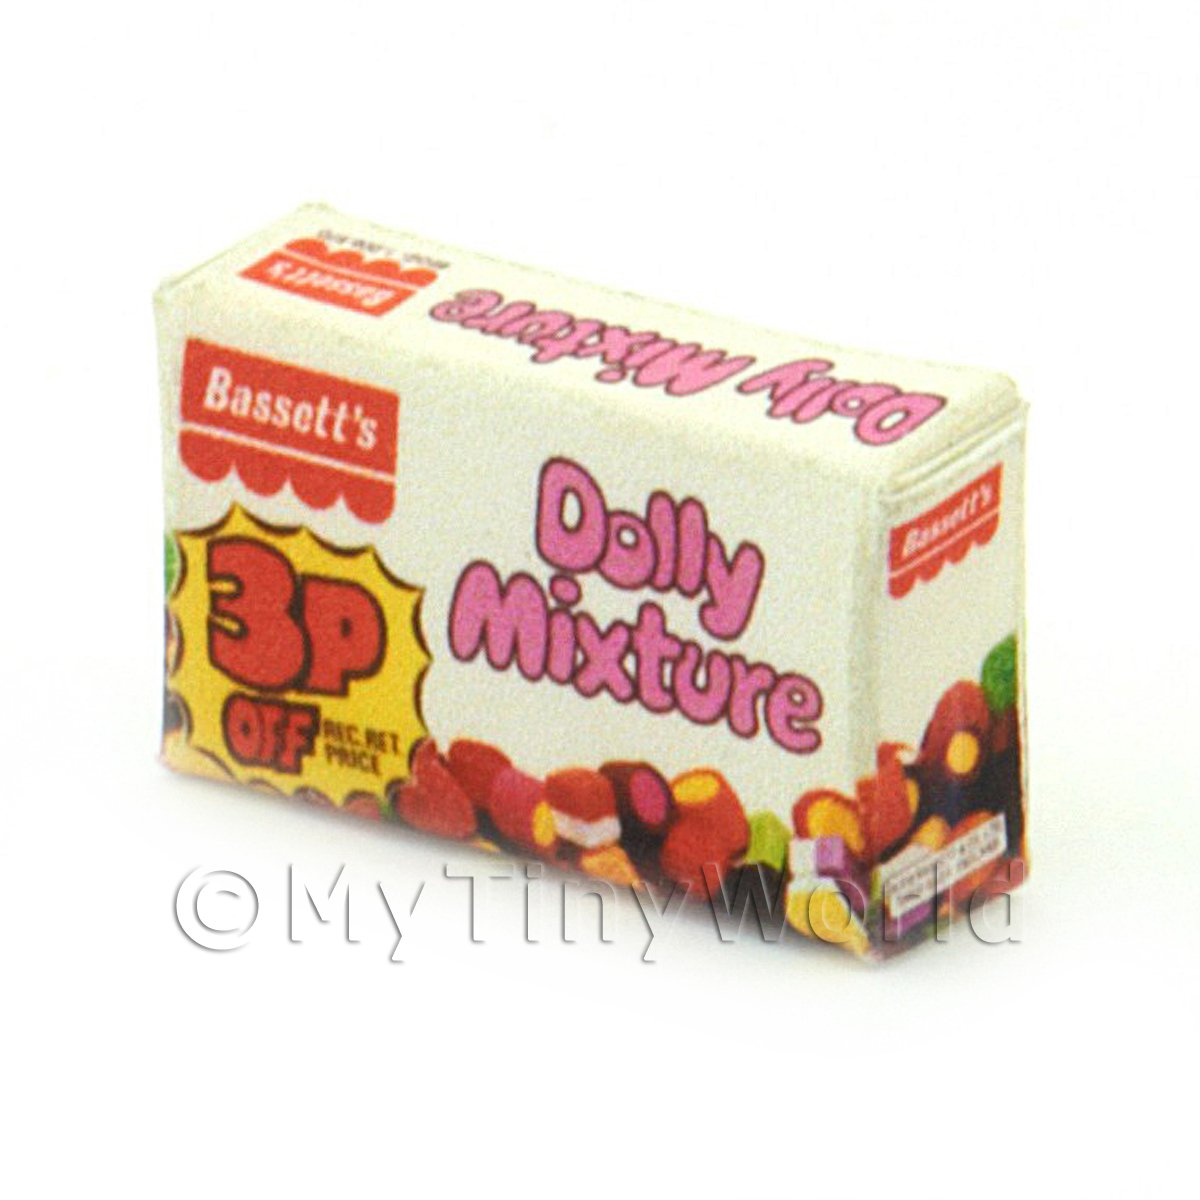 Dolls House Miniature Dolly Mixture Box From 1970s-80s